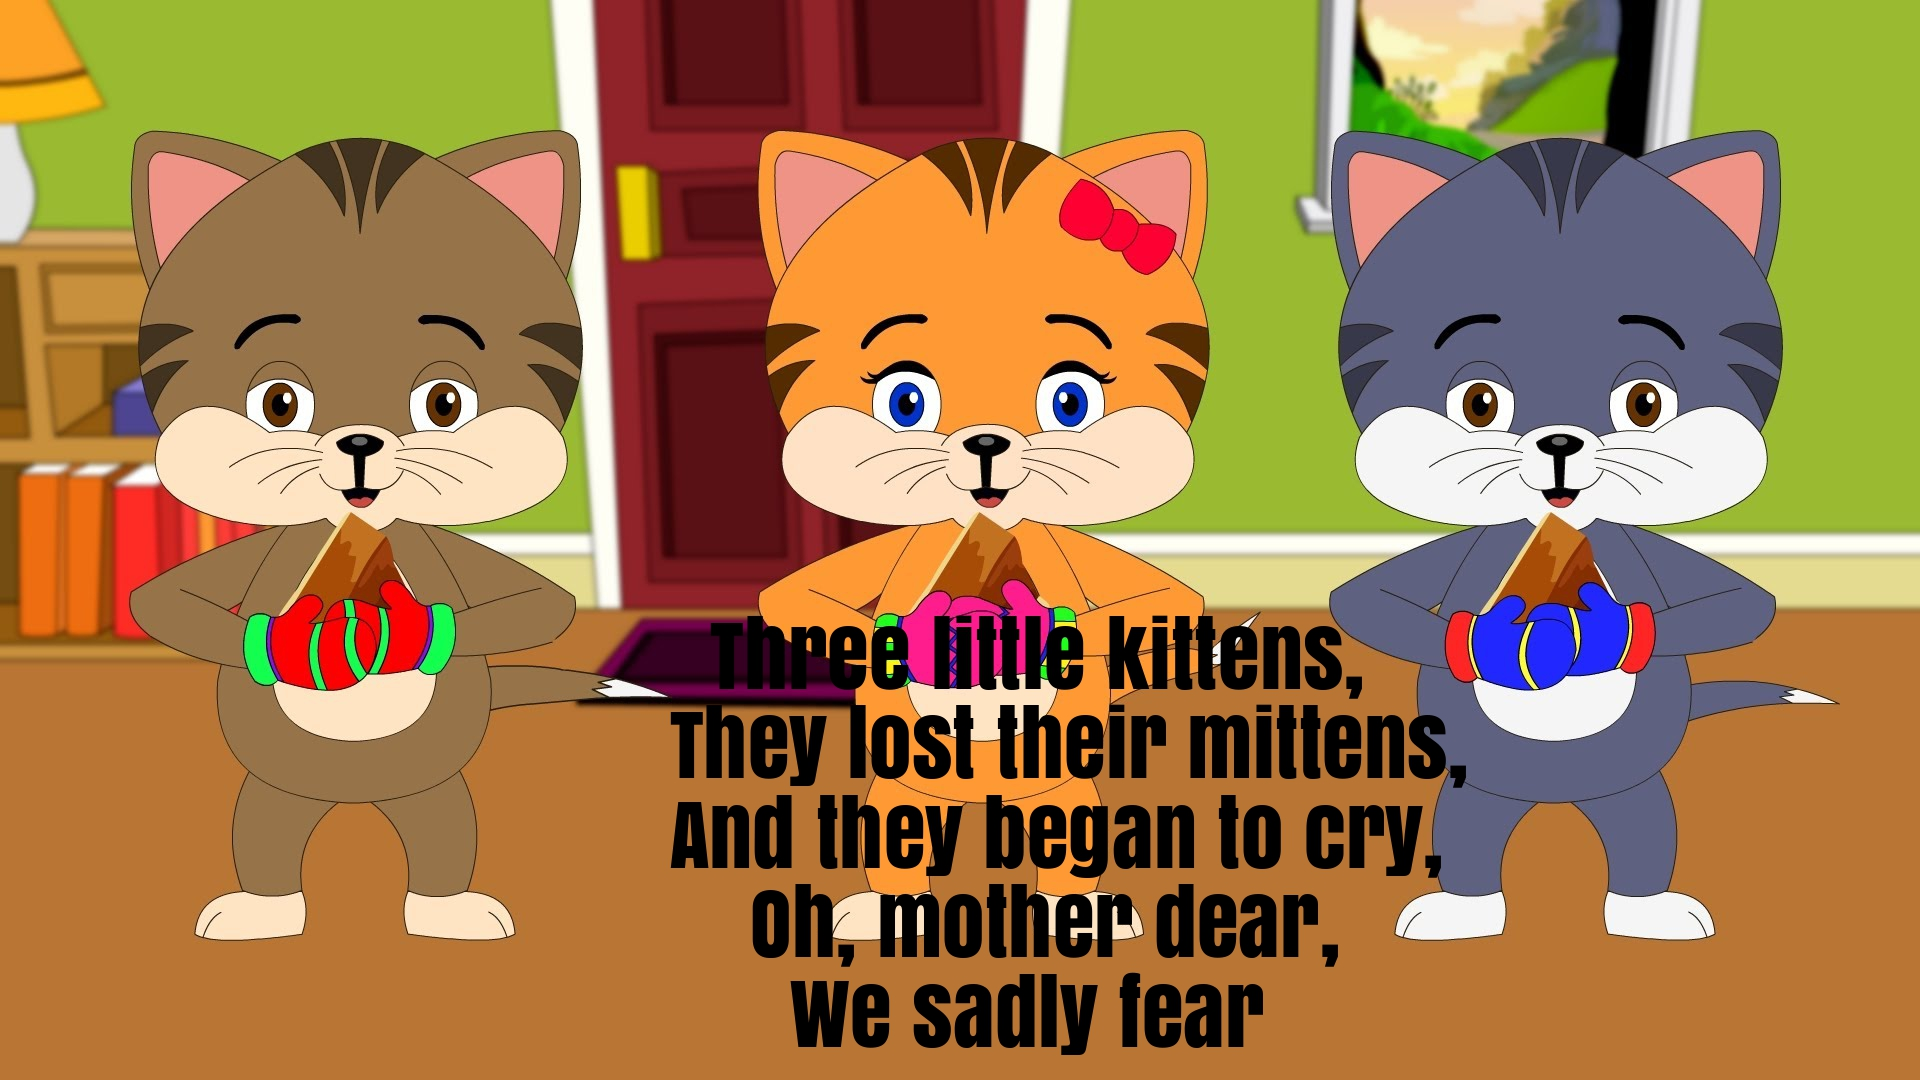 Three little clipart little kittens. Nursery rhyme lyrics super